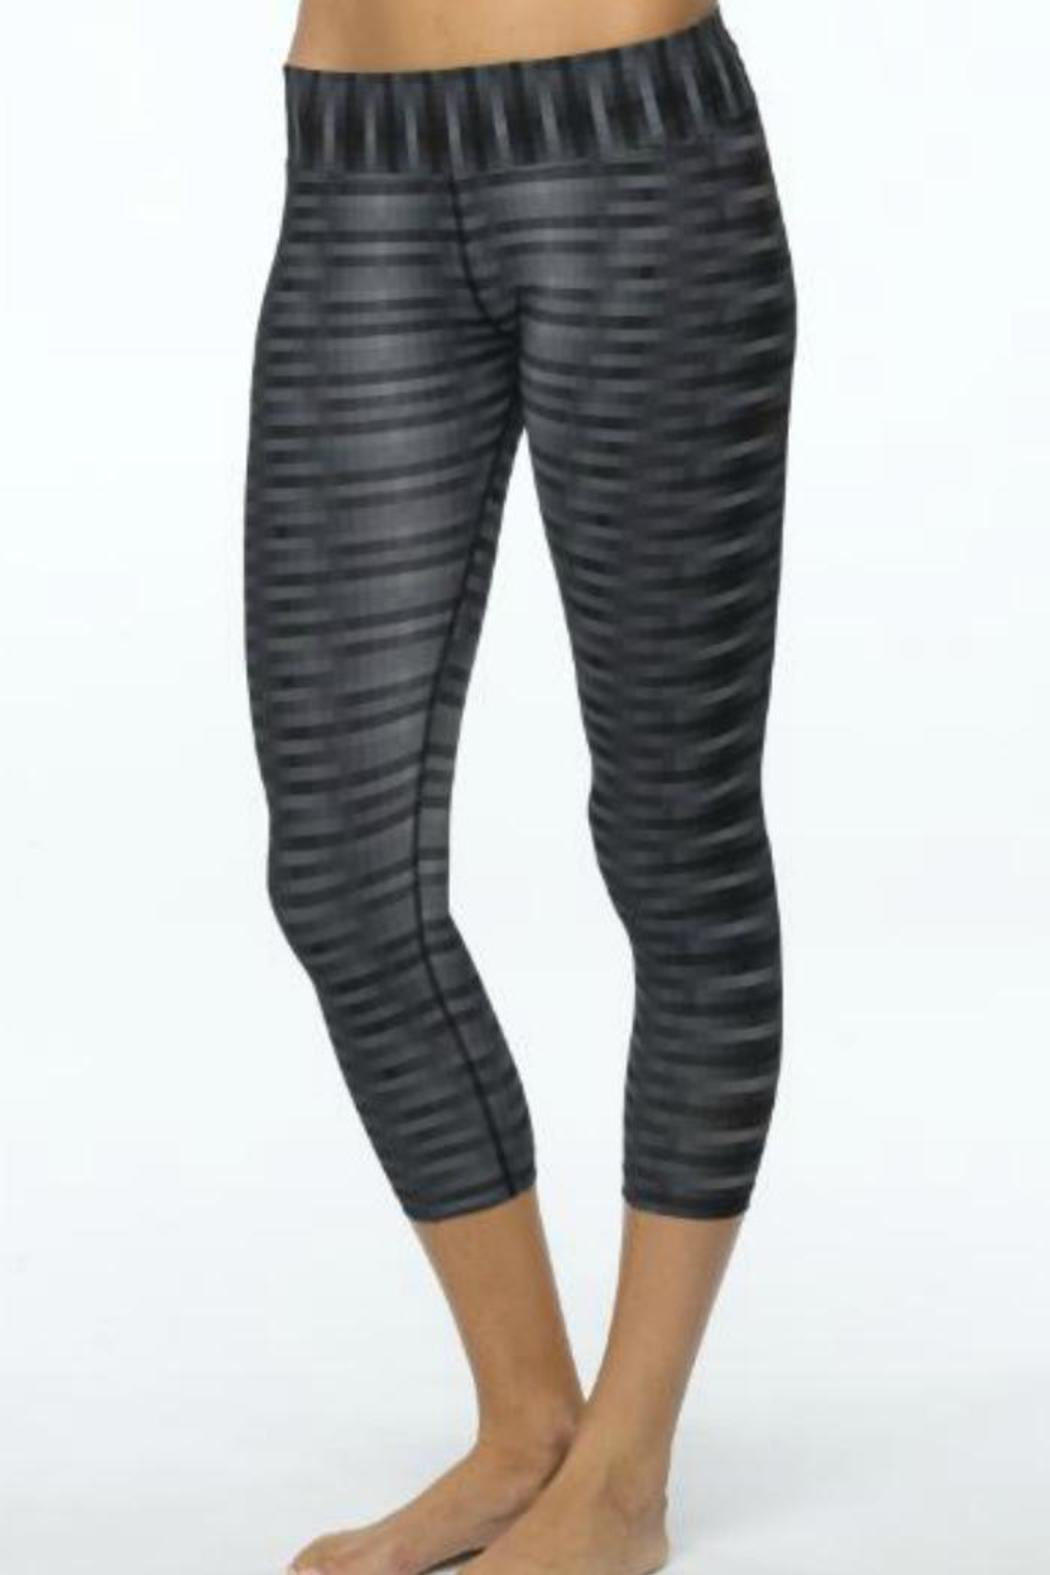 d1f025241766c Prana Yoga Capri Legging from Maryland by Serenity Fitness Boutique ...